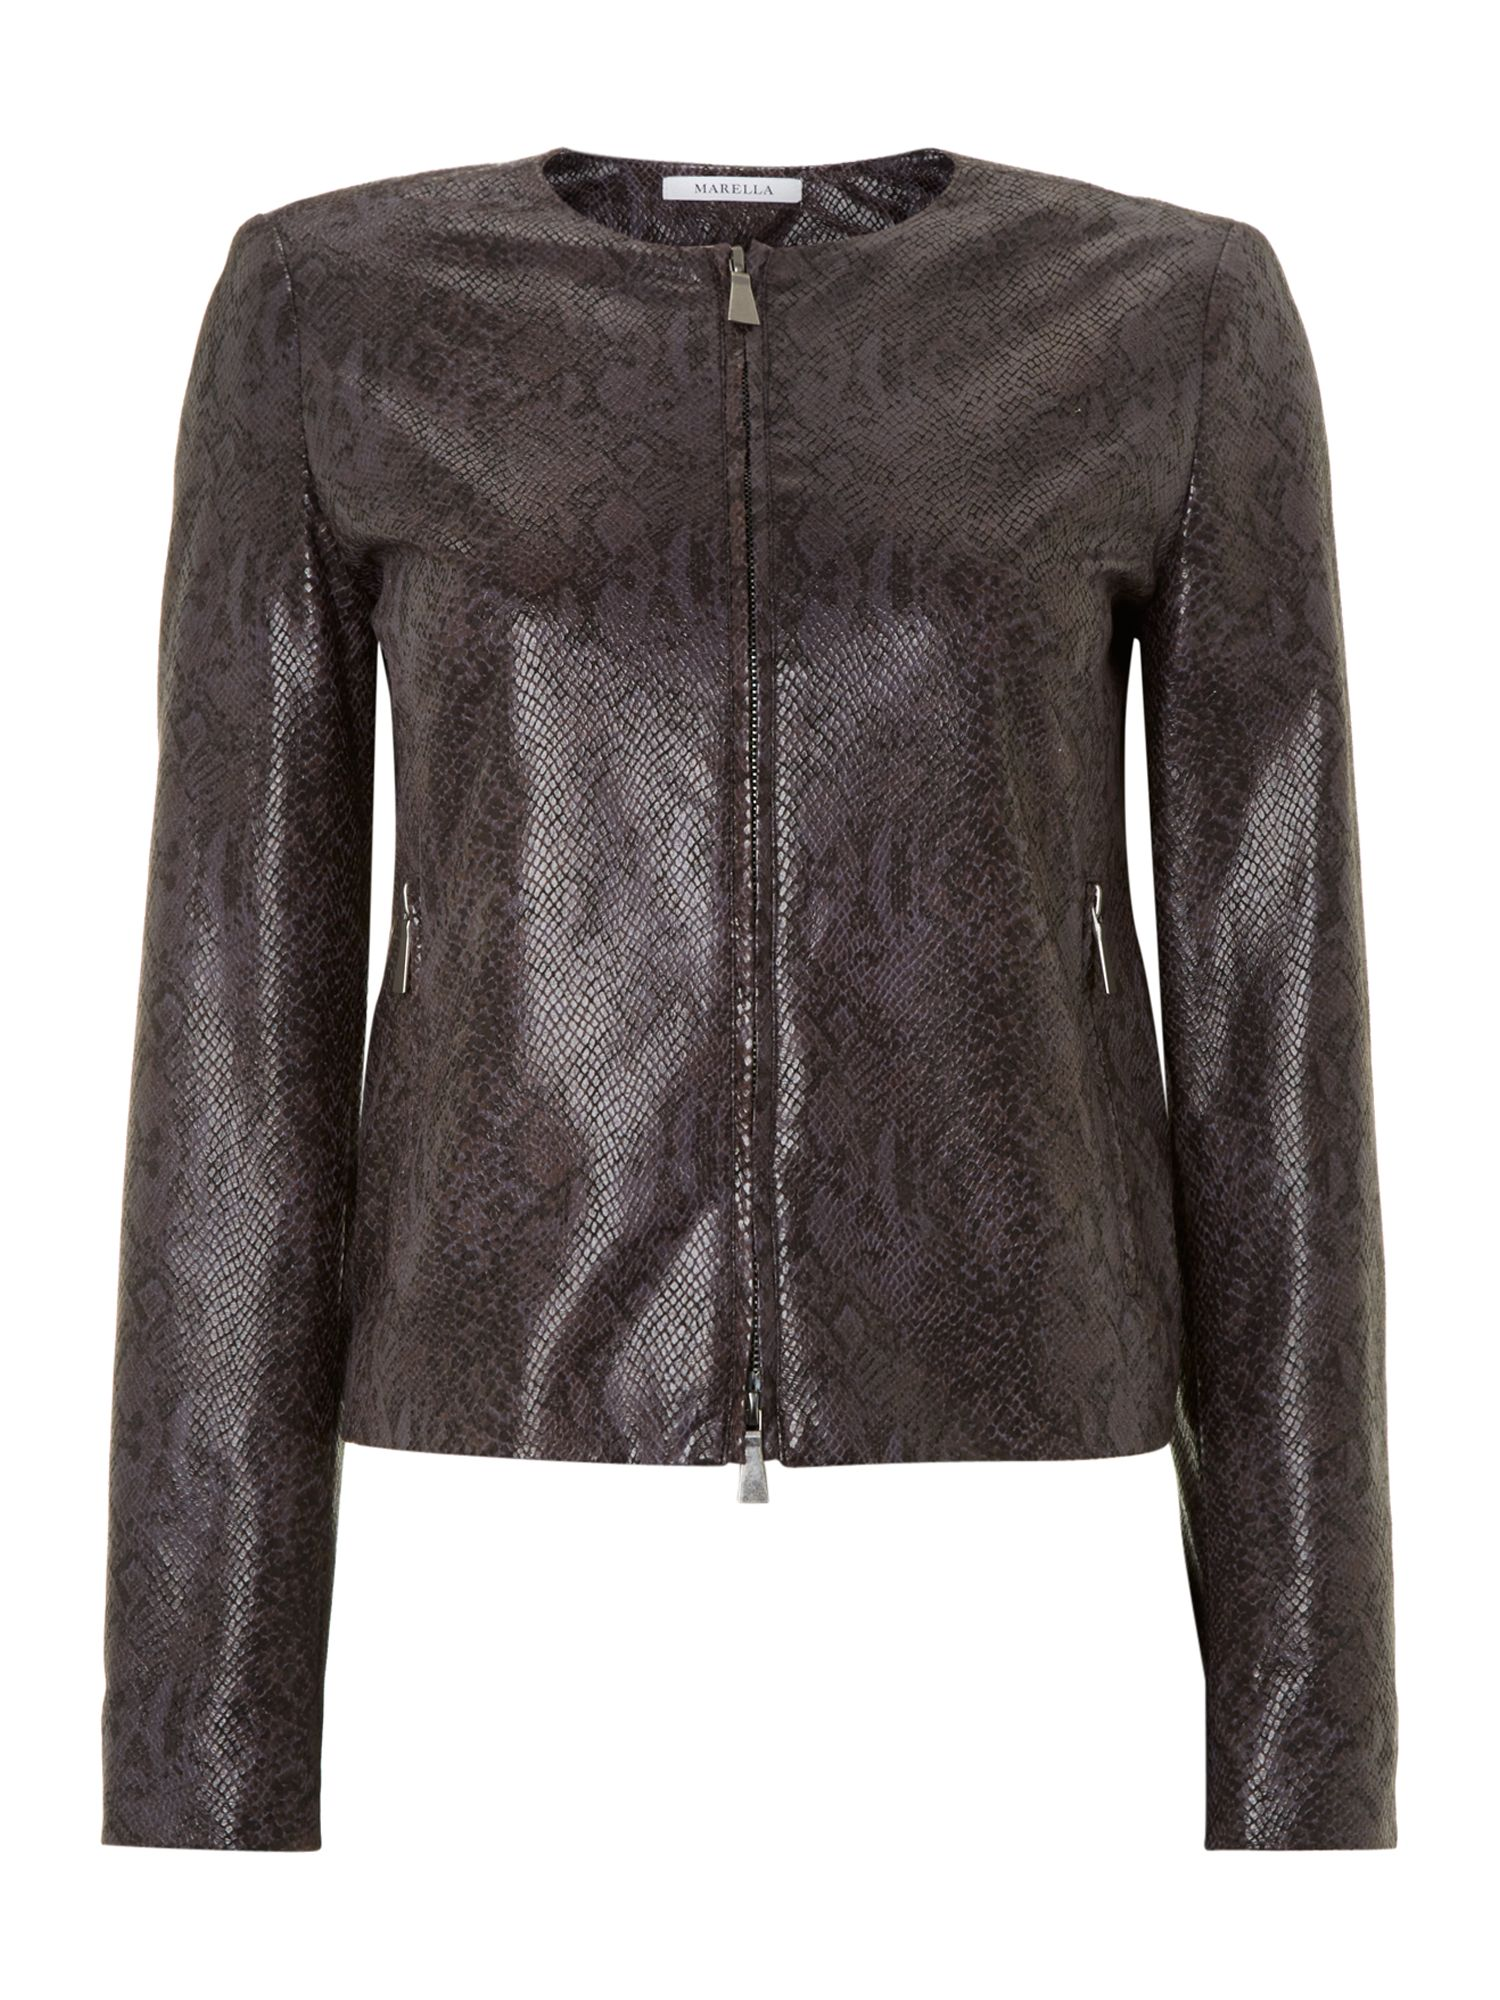 Ida eco leather snake print jacket